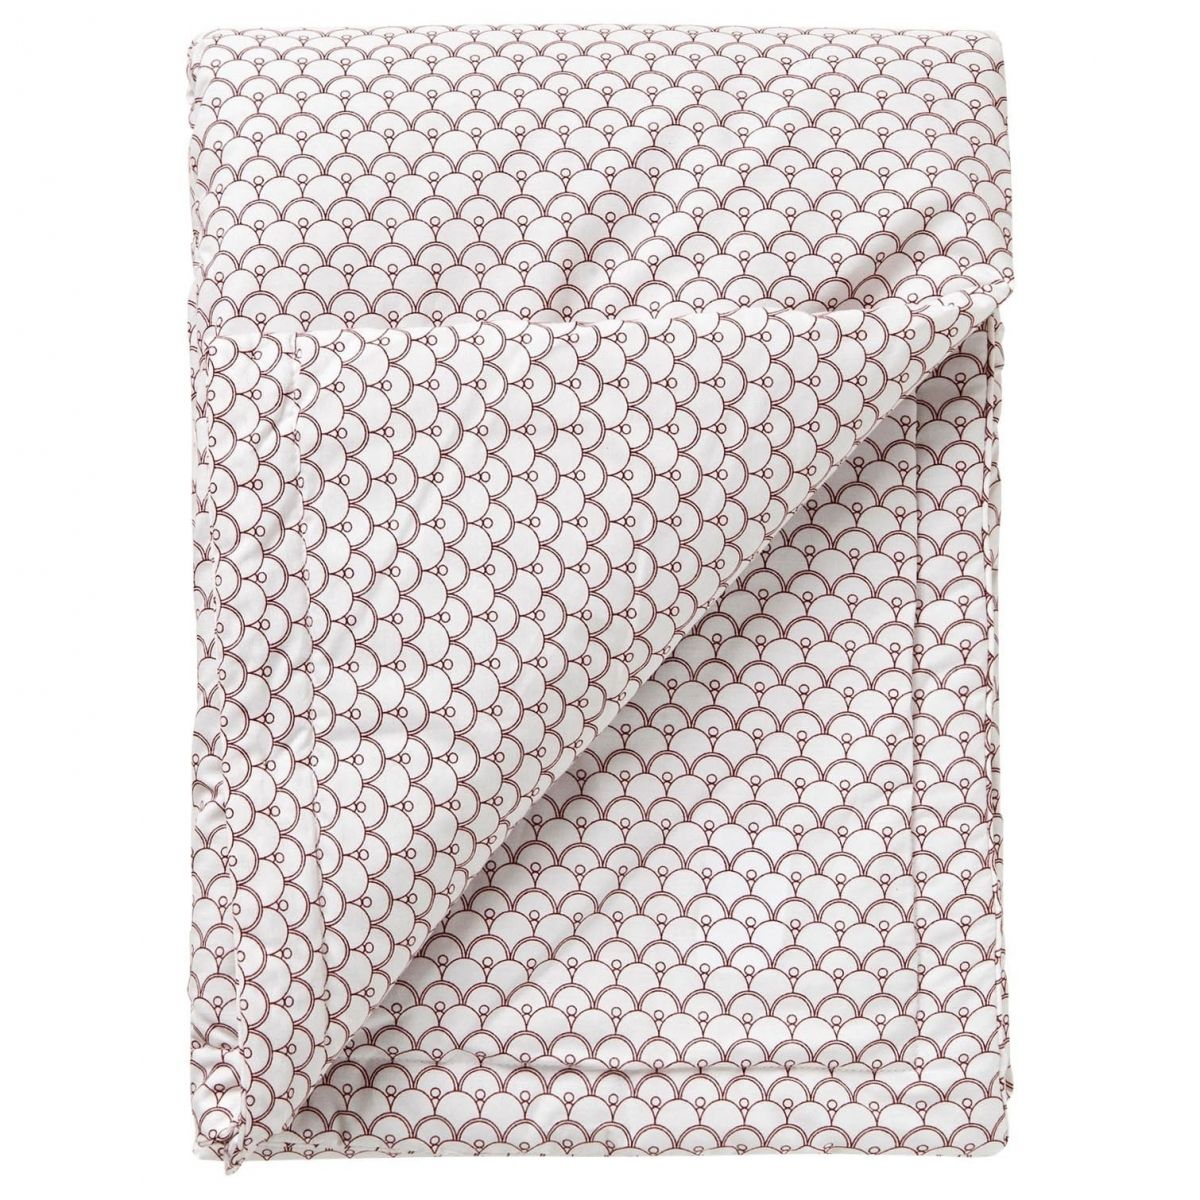 Garbo & Friends - Cupola Rust Filled Blanket white - 1